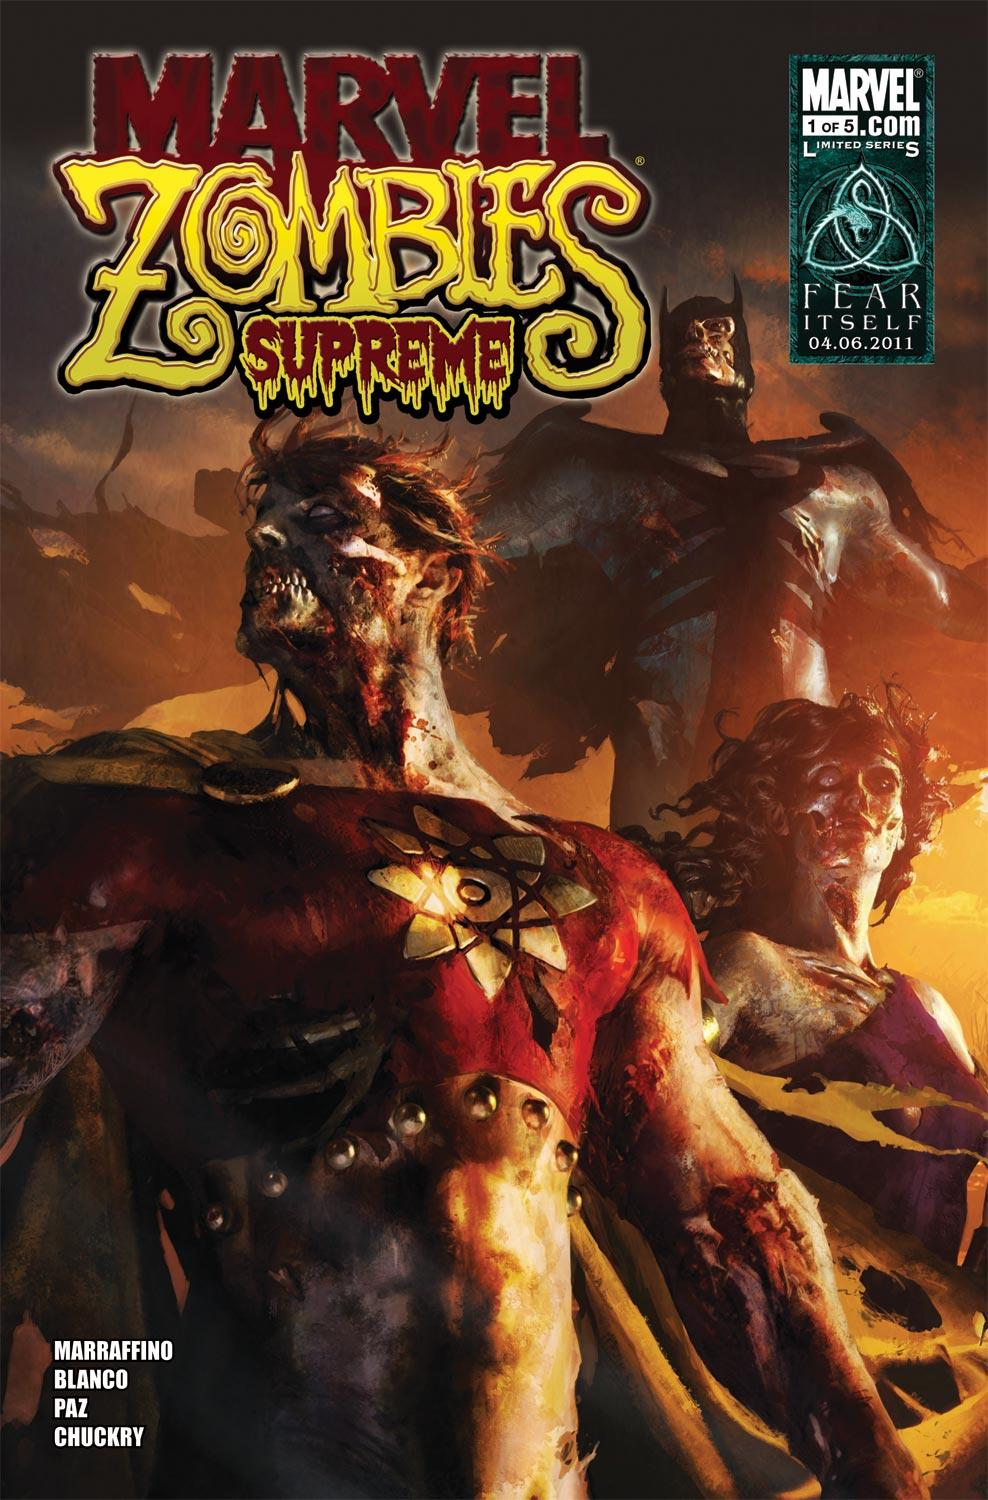 Marvel Zombies Supreme (2010) #1